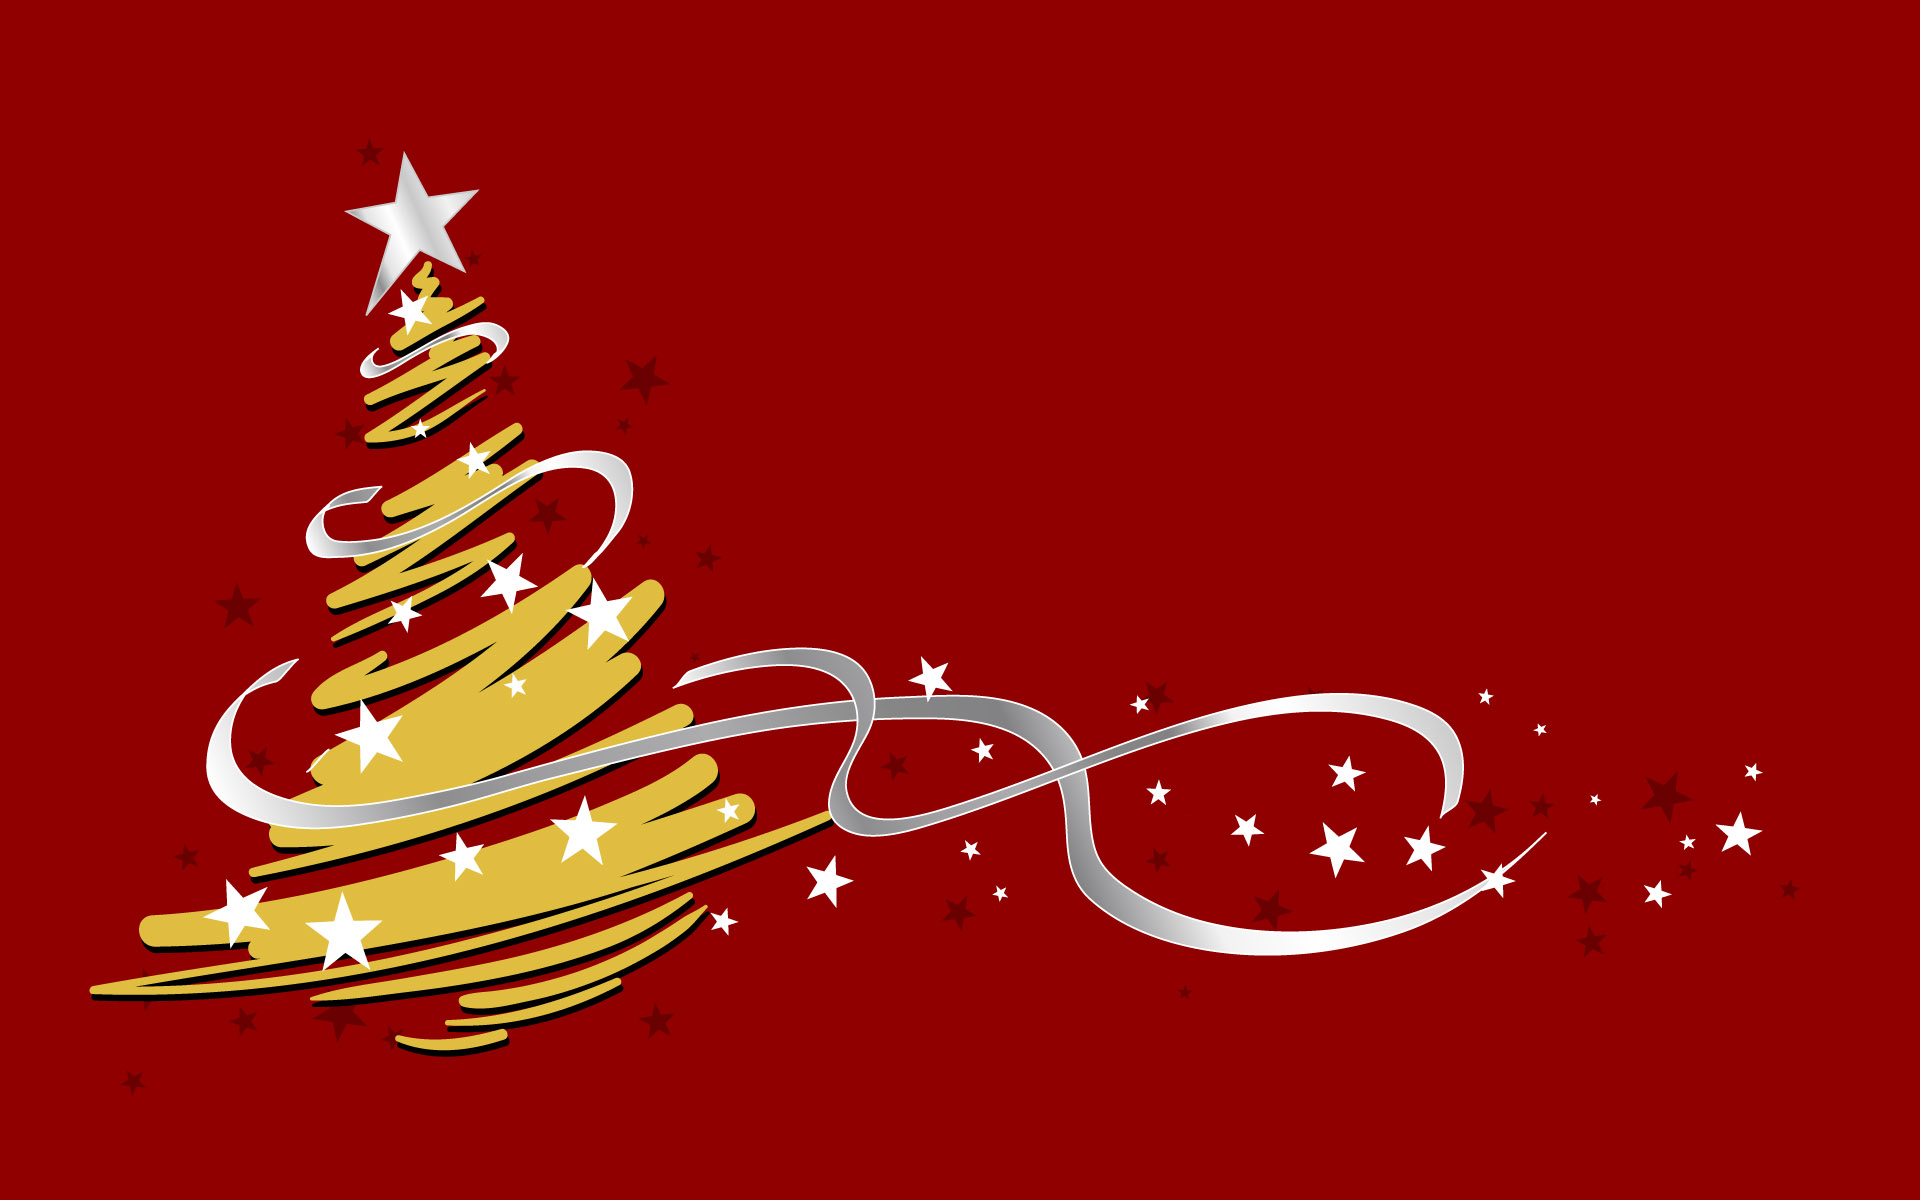 Christmas Design Wall Paper 420972 Hd Wallpaper Backgrounds